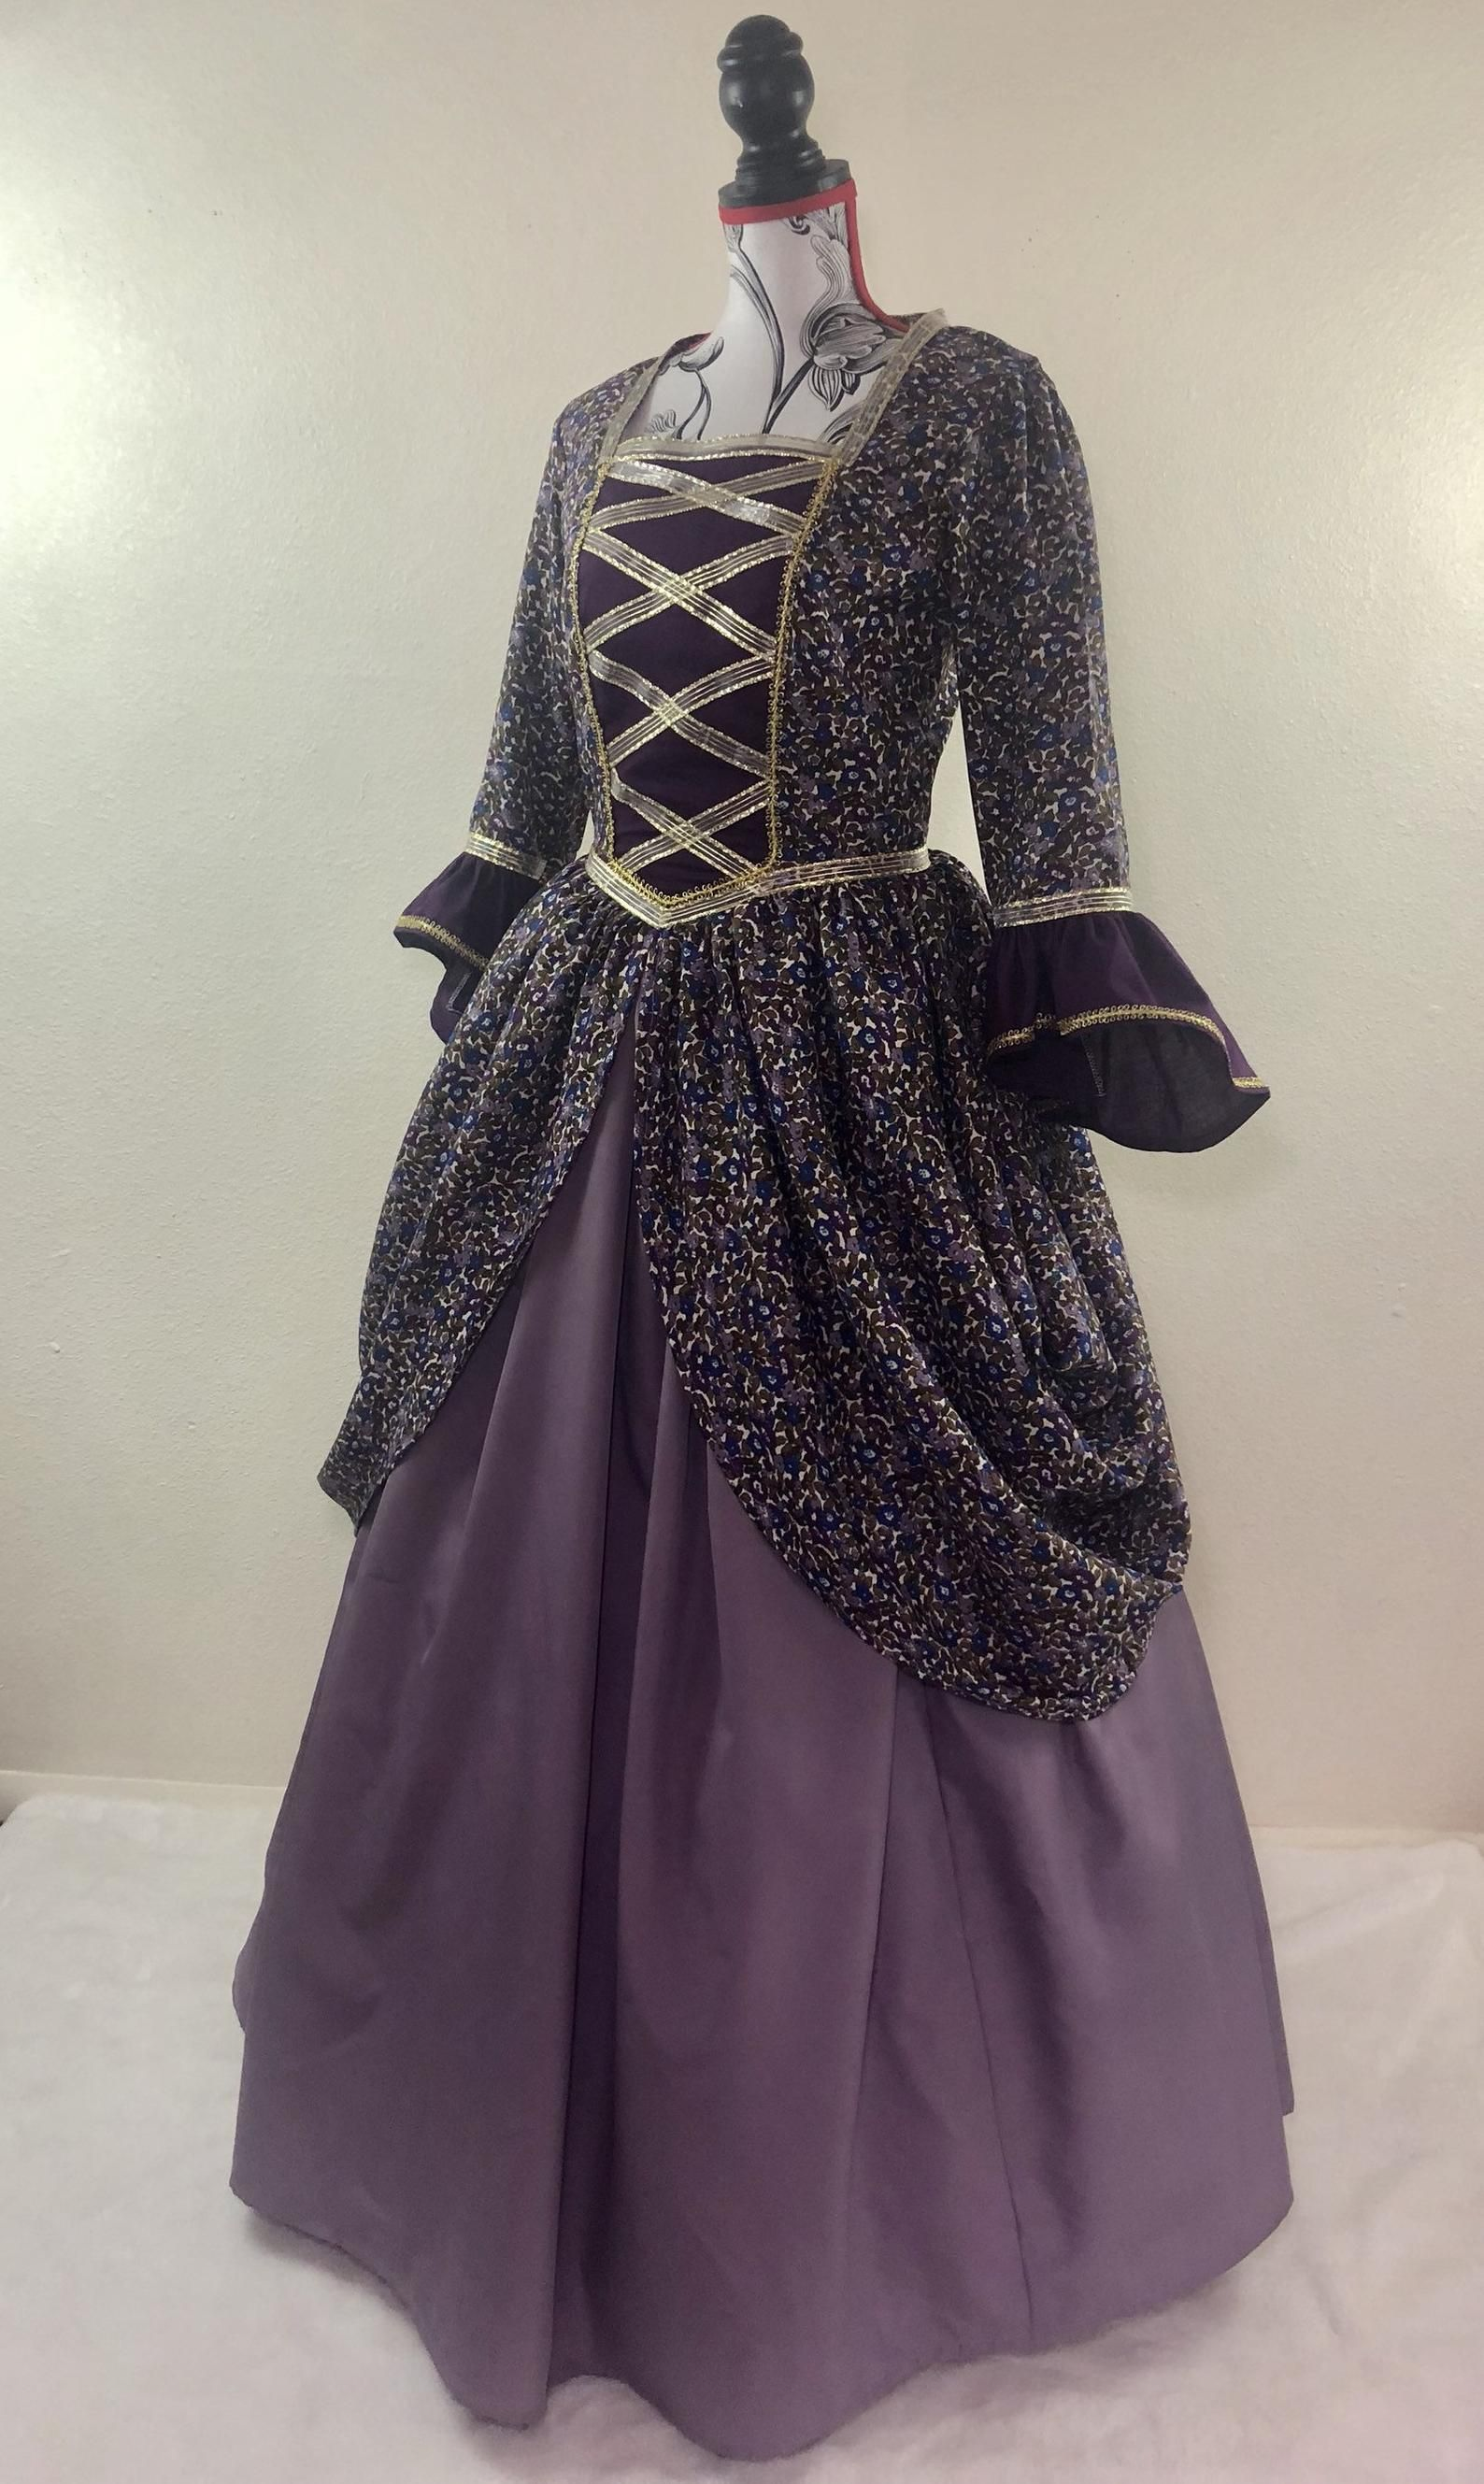 Misses Size 12 Purple And Gold Regal Drape Ball Gown Etsy Ball Gowns Dresses Black Victorian Dress [ 2658 x 1588 Pixel ]